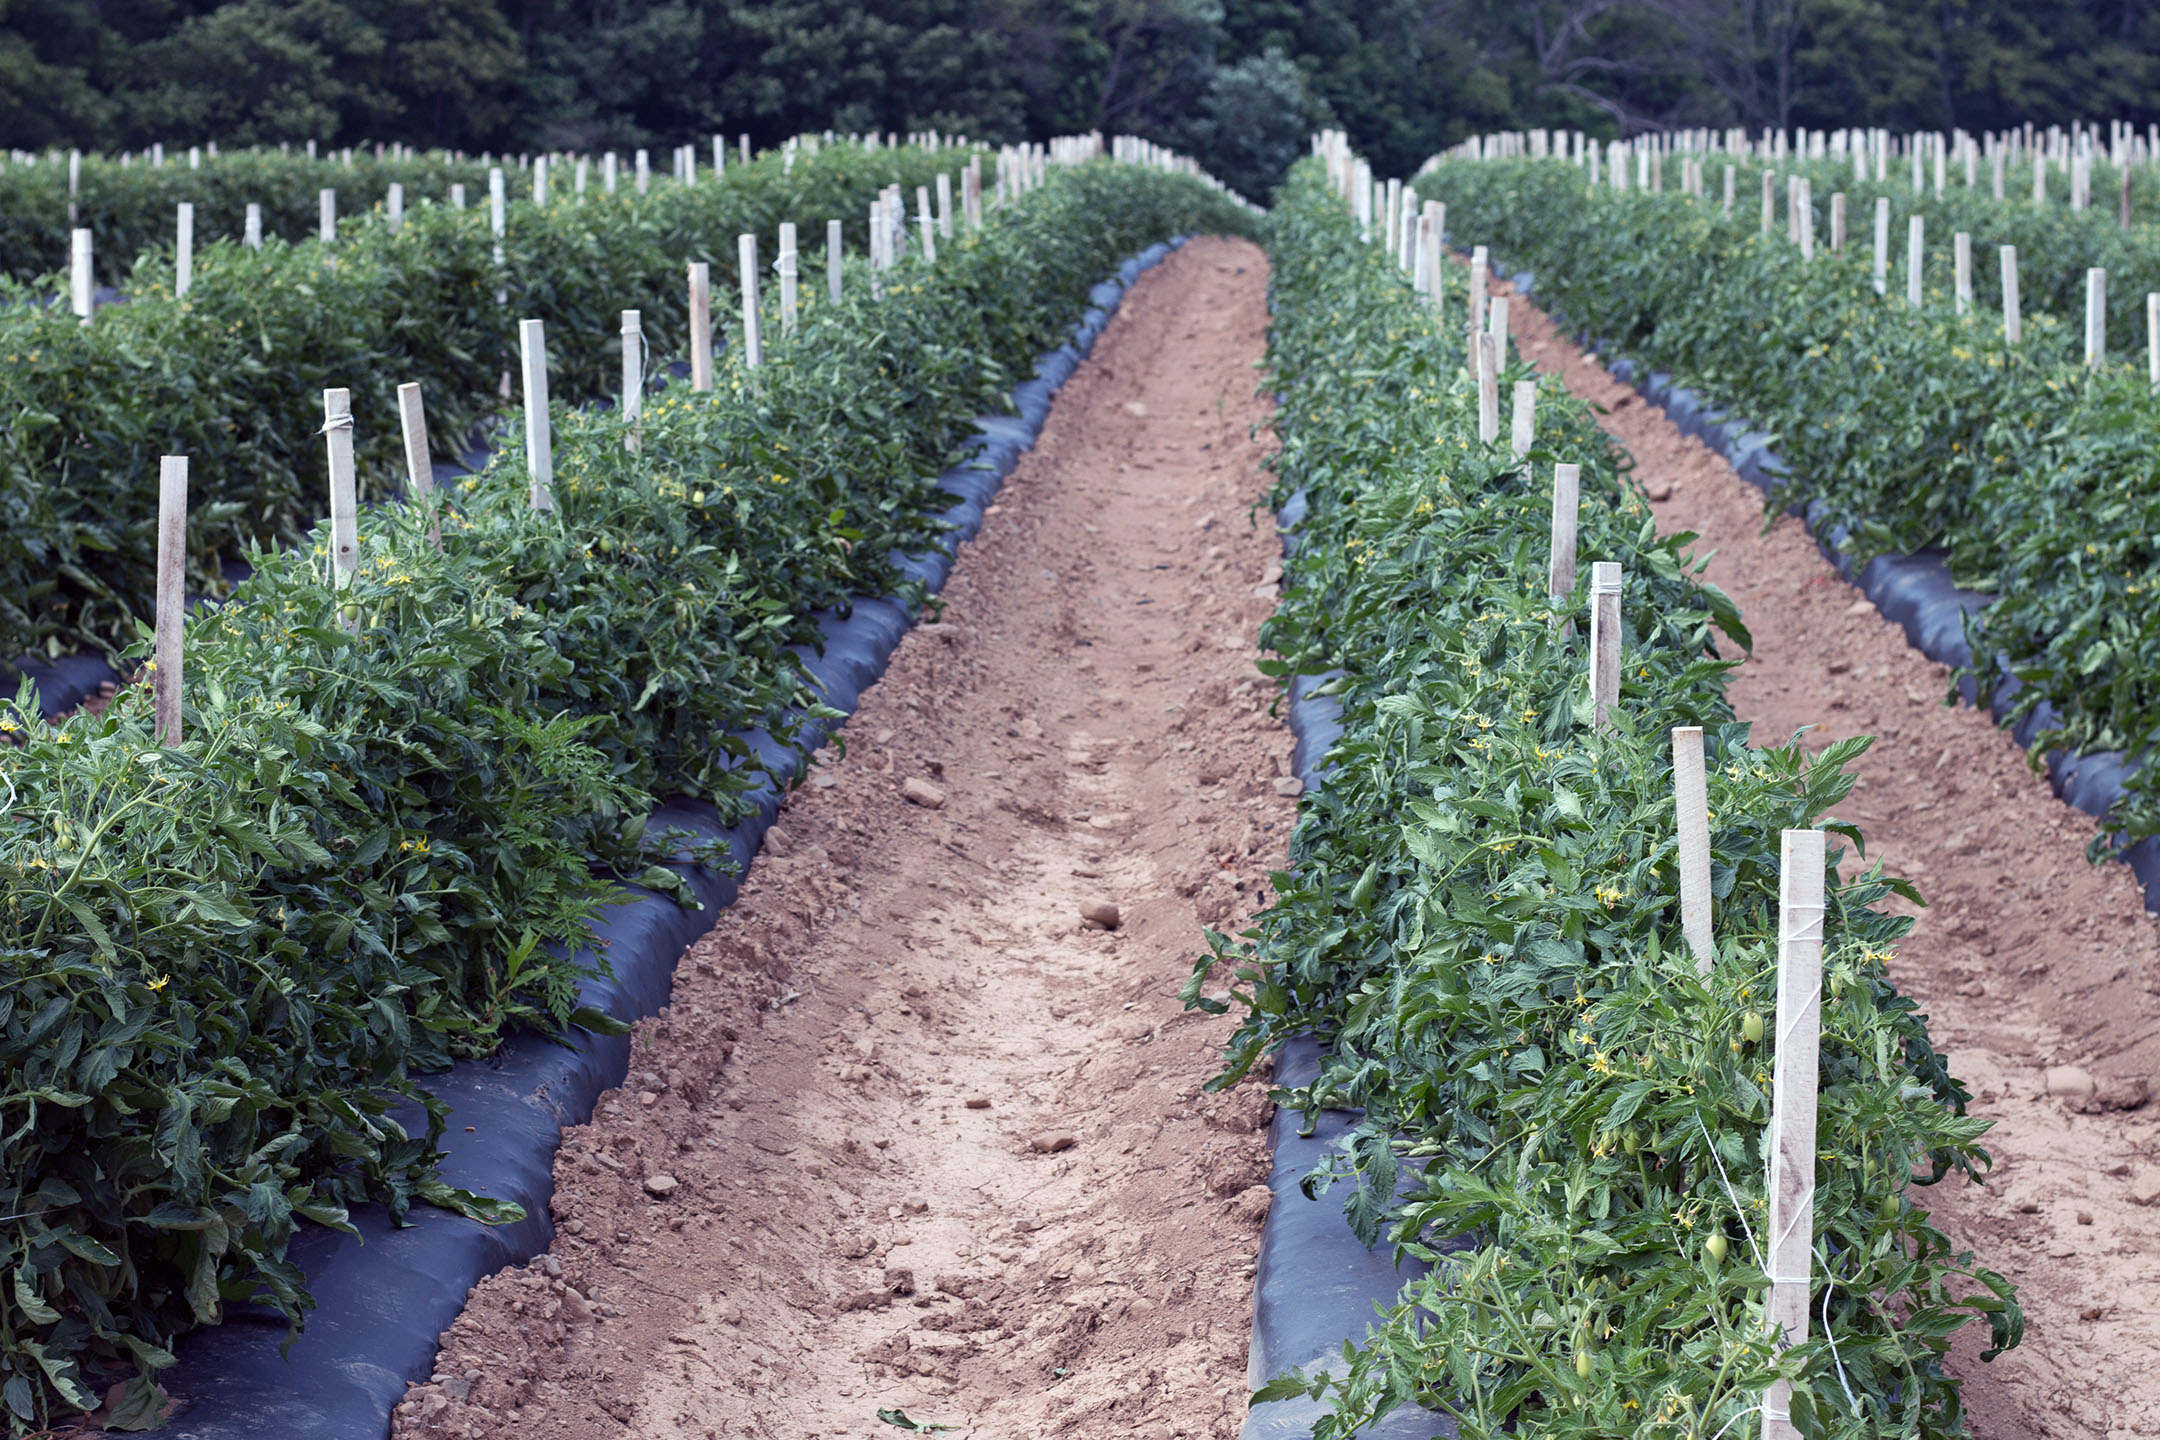 Rows of tomatoes planted in raised beds and black plastic mulch at Cecarelli Farms on July 13th, 2018.